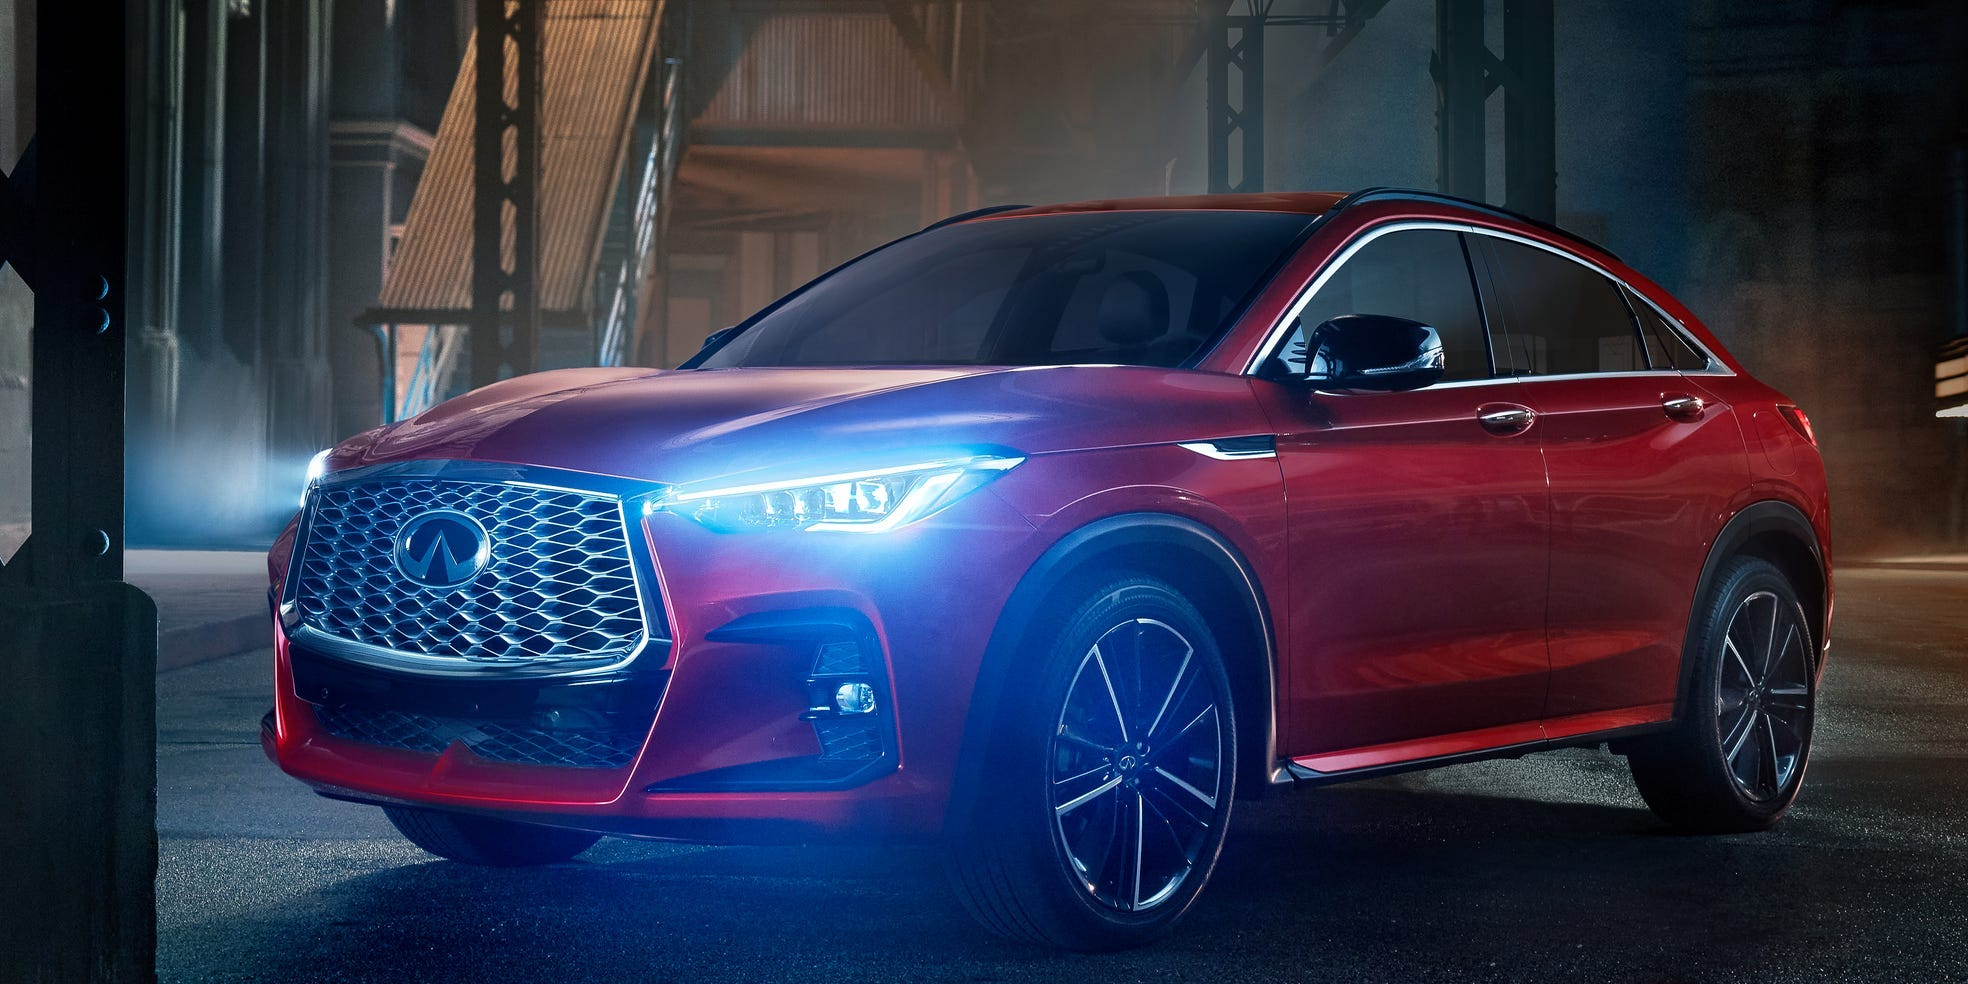 Infiniti's new chief lays out his grand plan to revive the flailing luxury brand, whose sales have dropped 50% since 2017